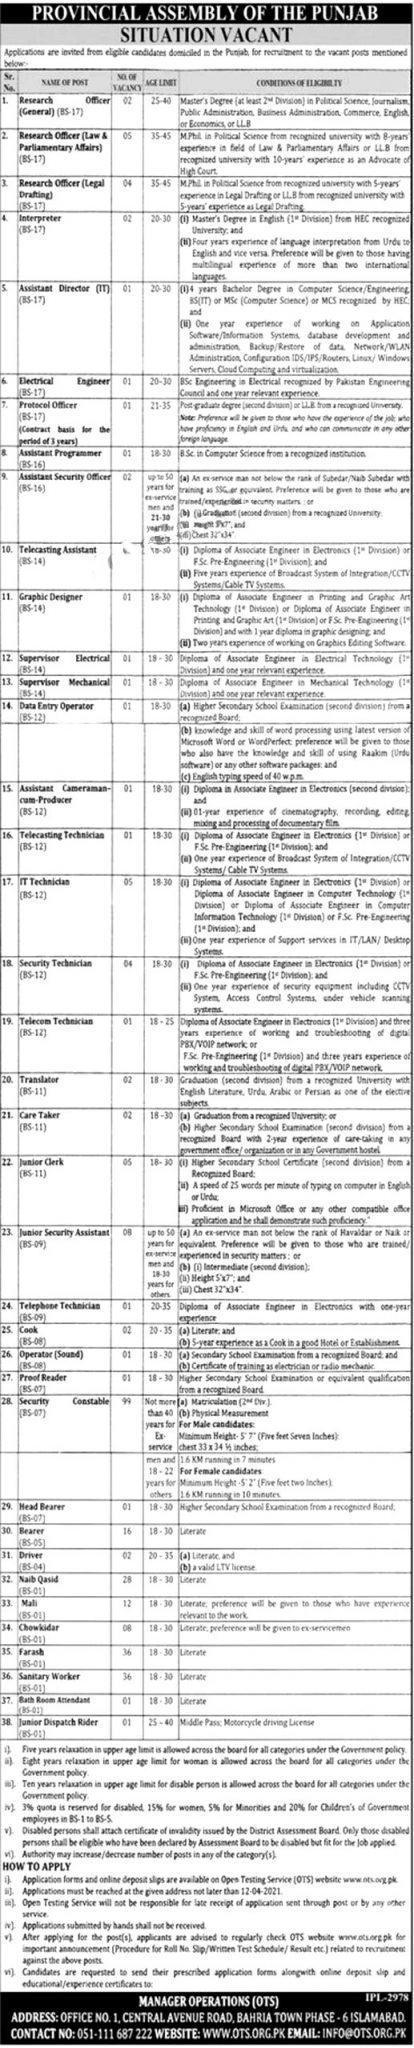 Punjab Provincial Assembly Jobs 2021 Online Application Form Eligibility Criteria